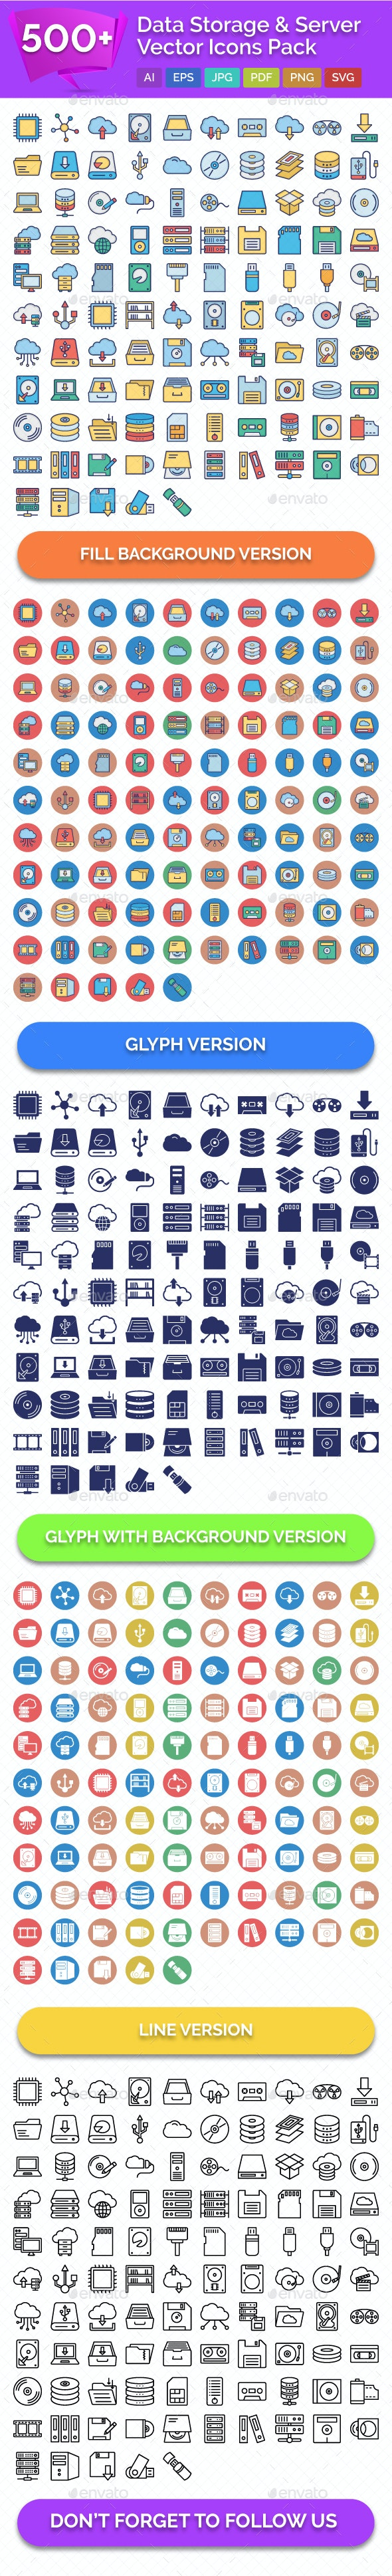 500+ Data Storage & Server Vector Icons Pack - Icons